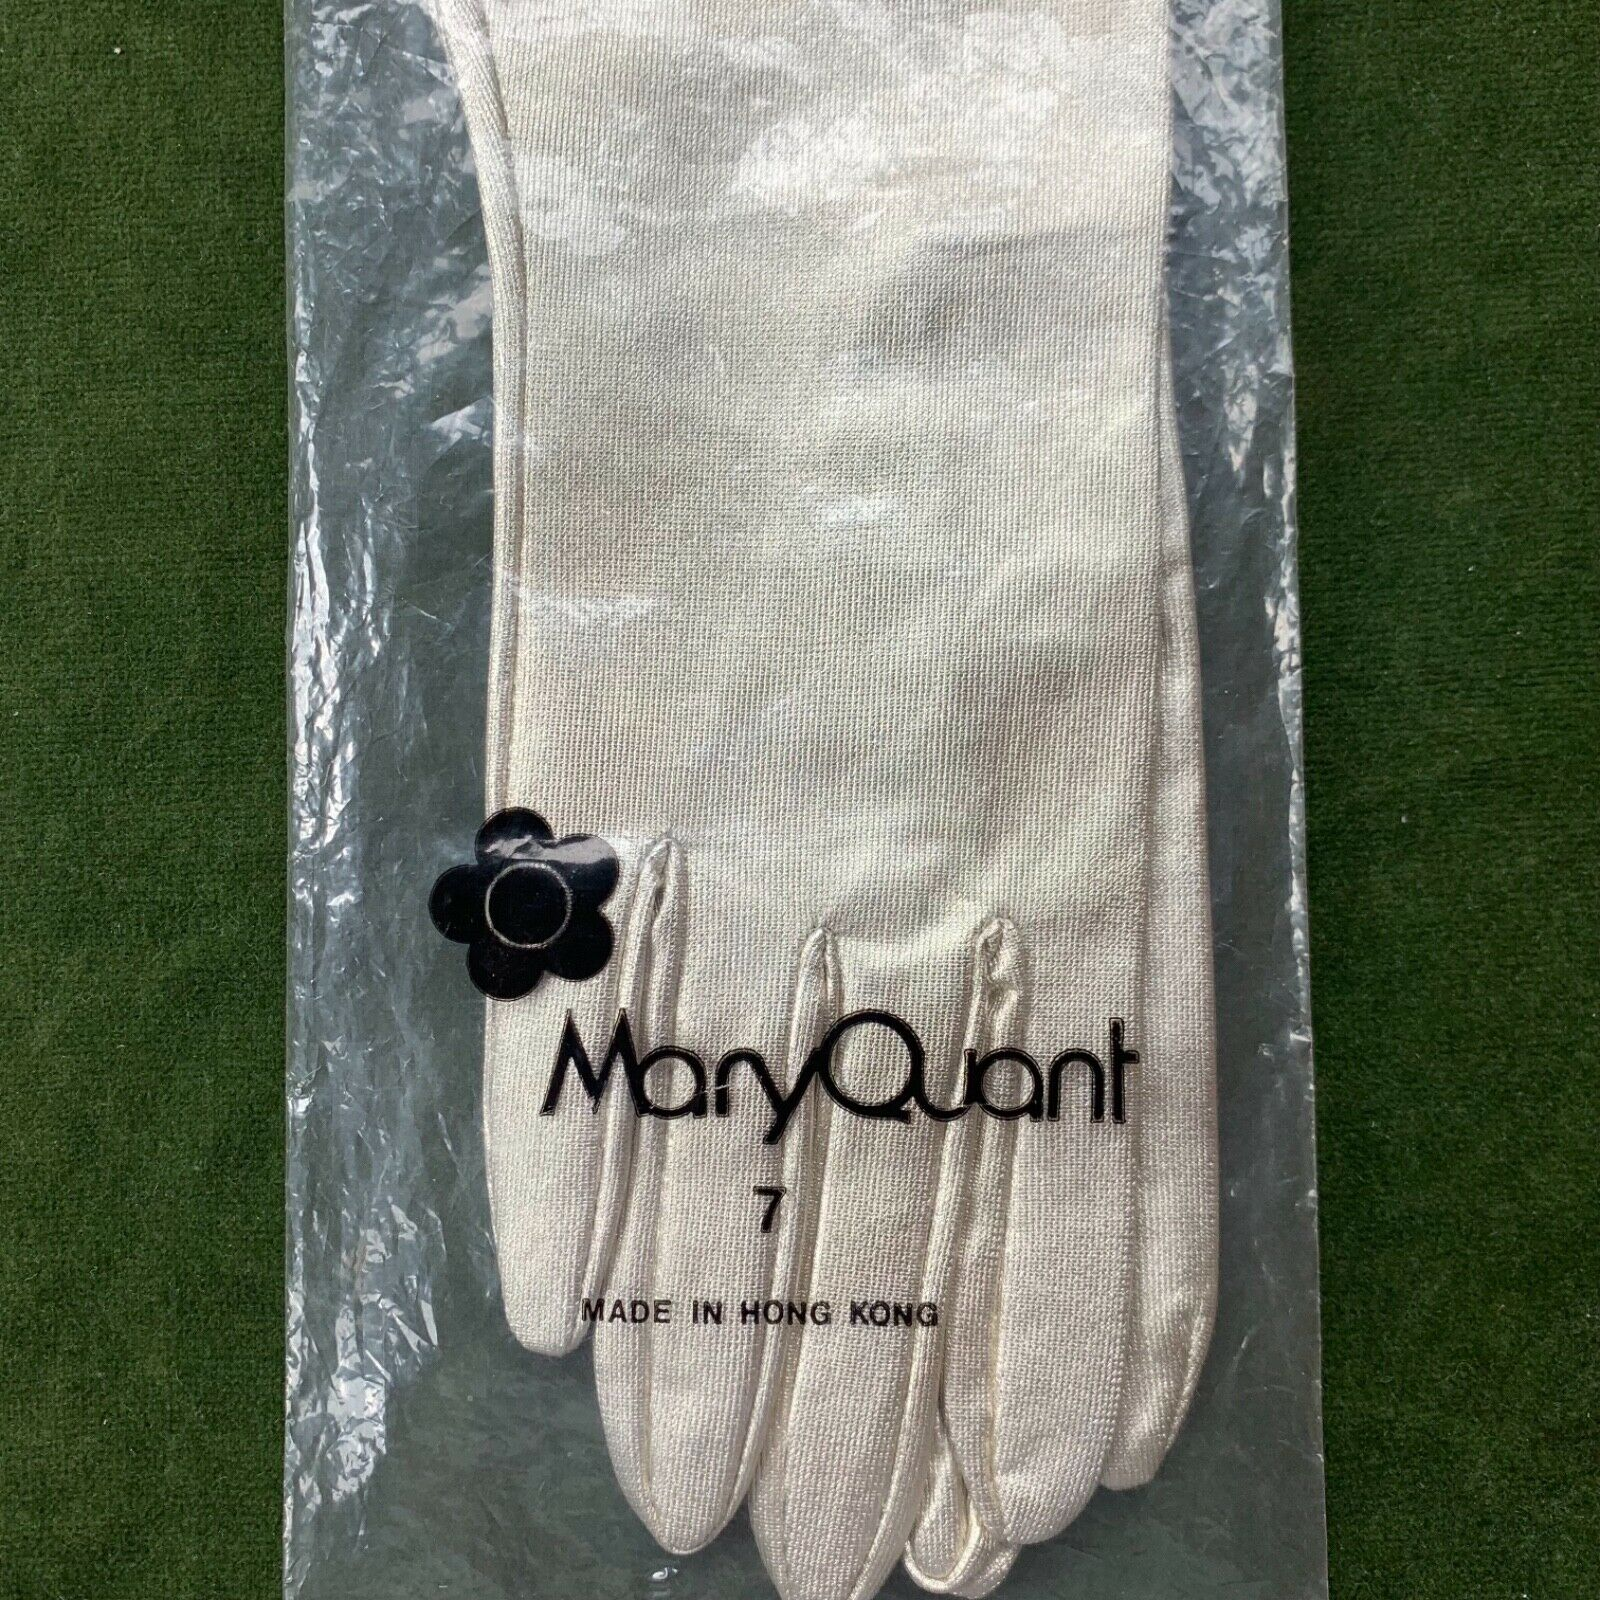 Mary Quant Gloves 1960s 1970s Metallic Tricot Nylon Hong Kong Size 7 Vintage